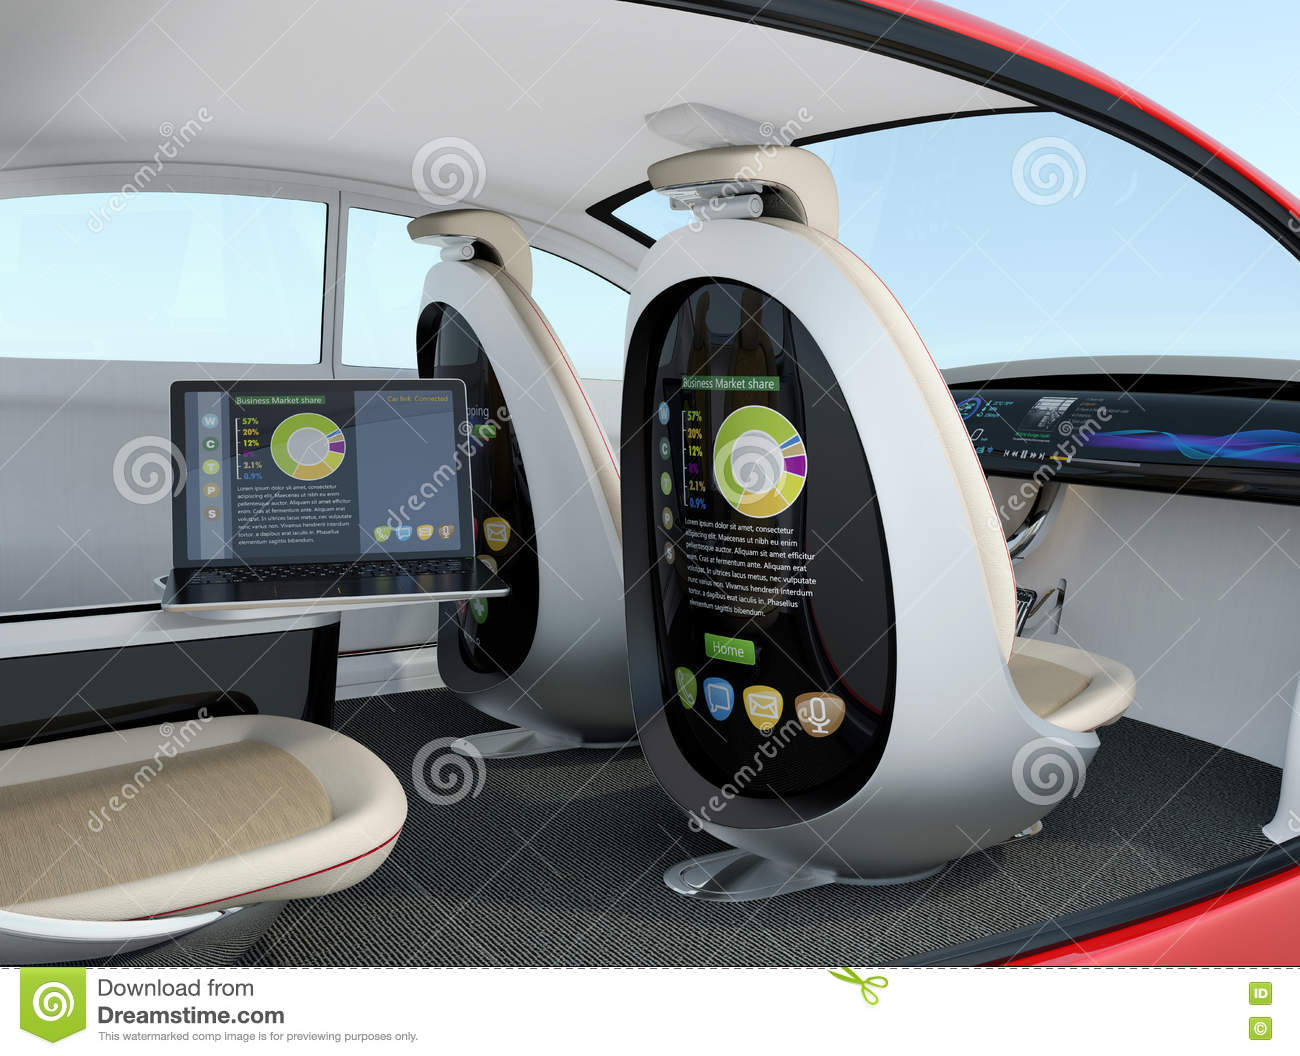 Autonomous car interior concept. Screen of the seat and laptop showing same document in sync mode